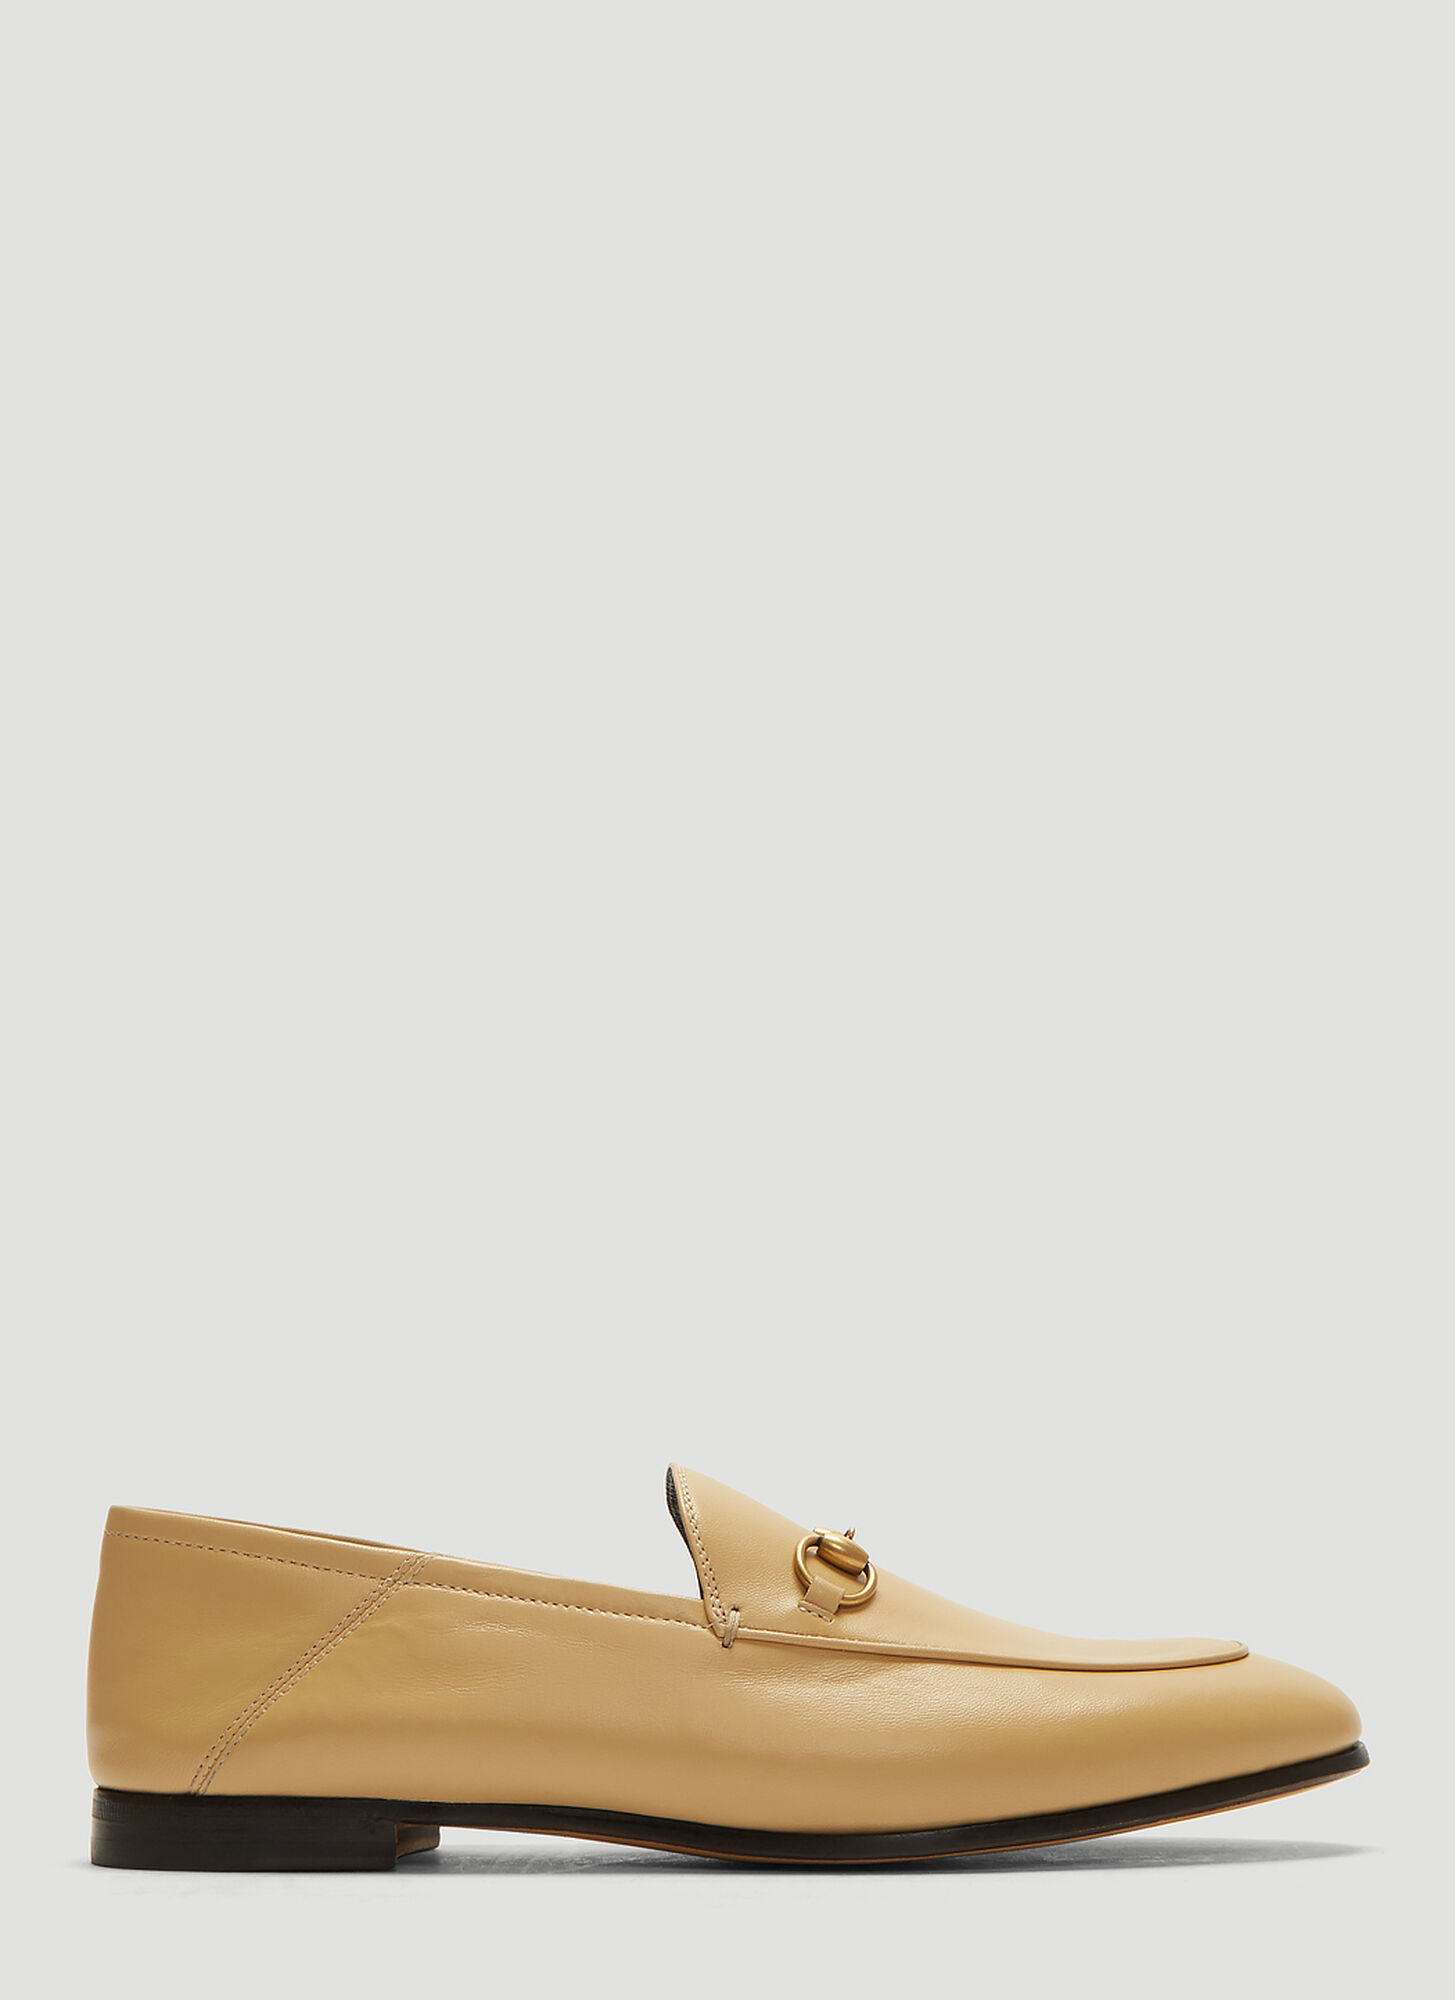 Gucci Horsebit Loafers in Beige